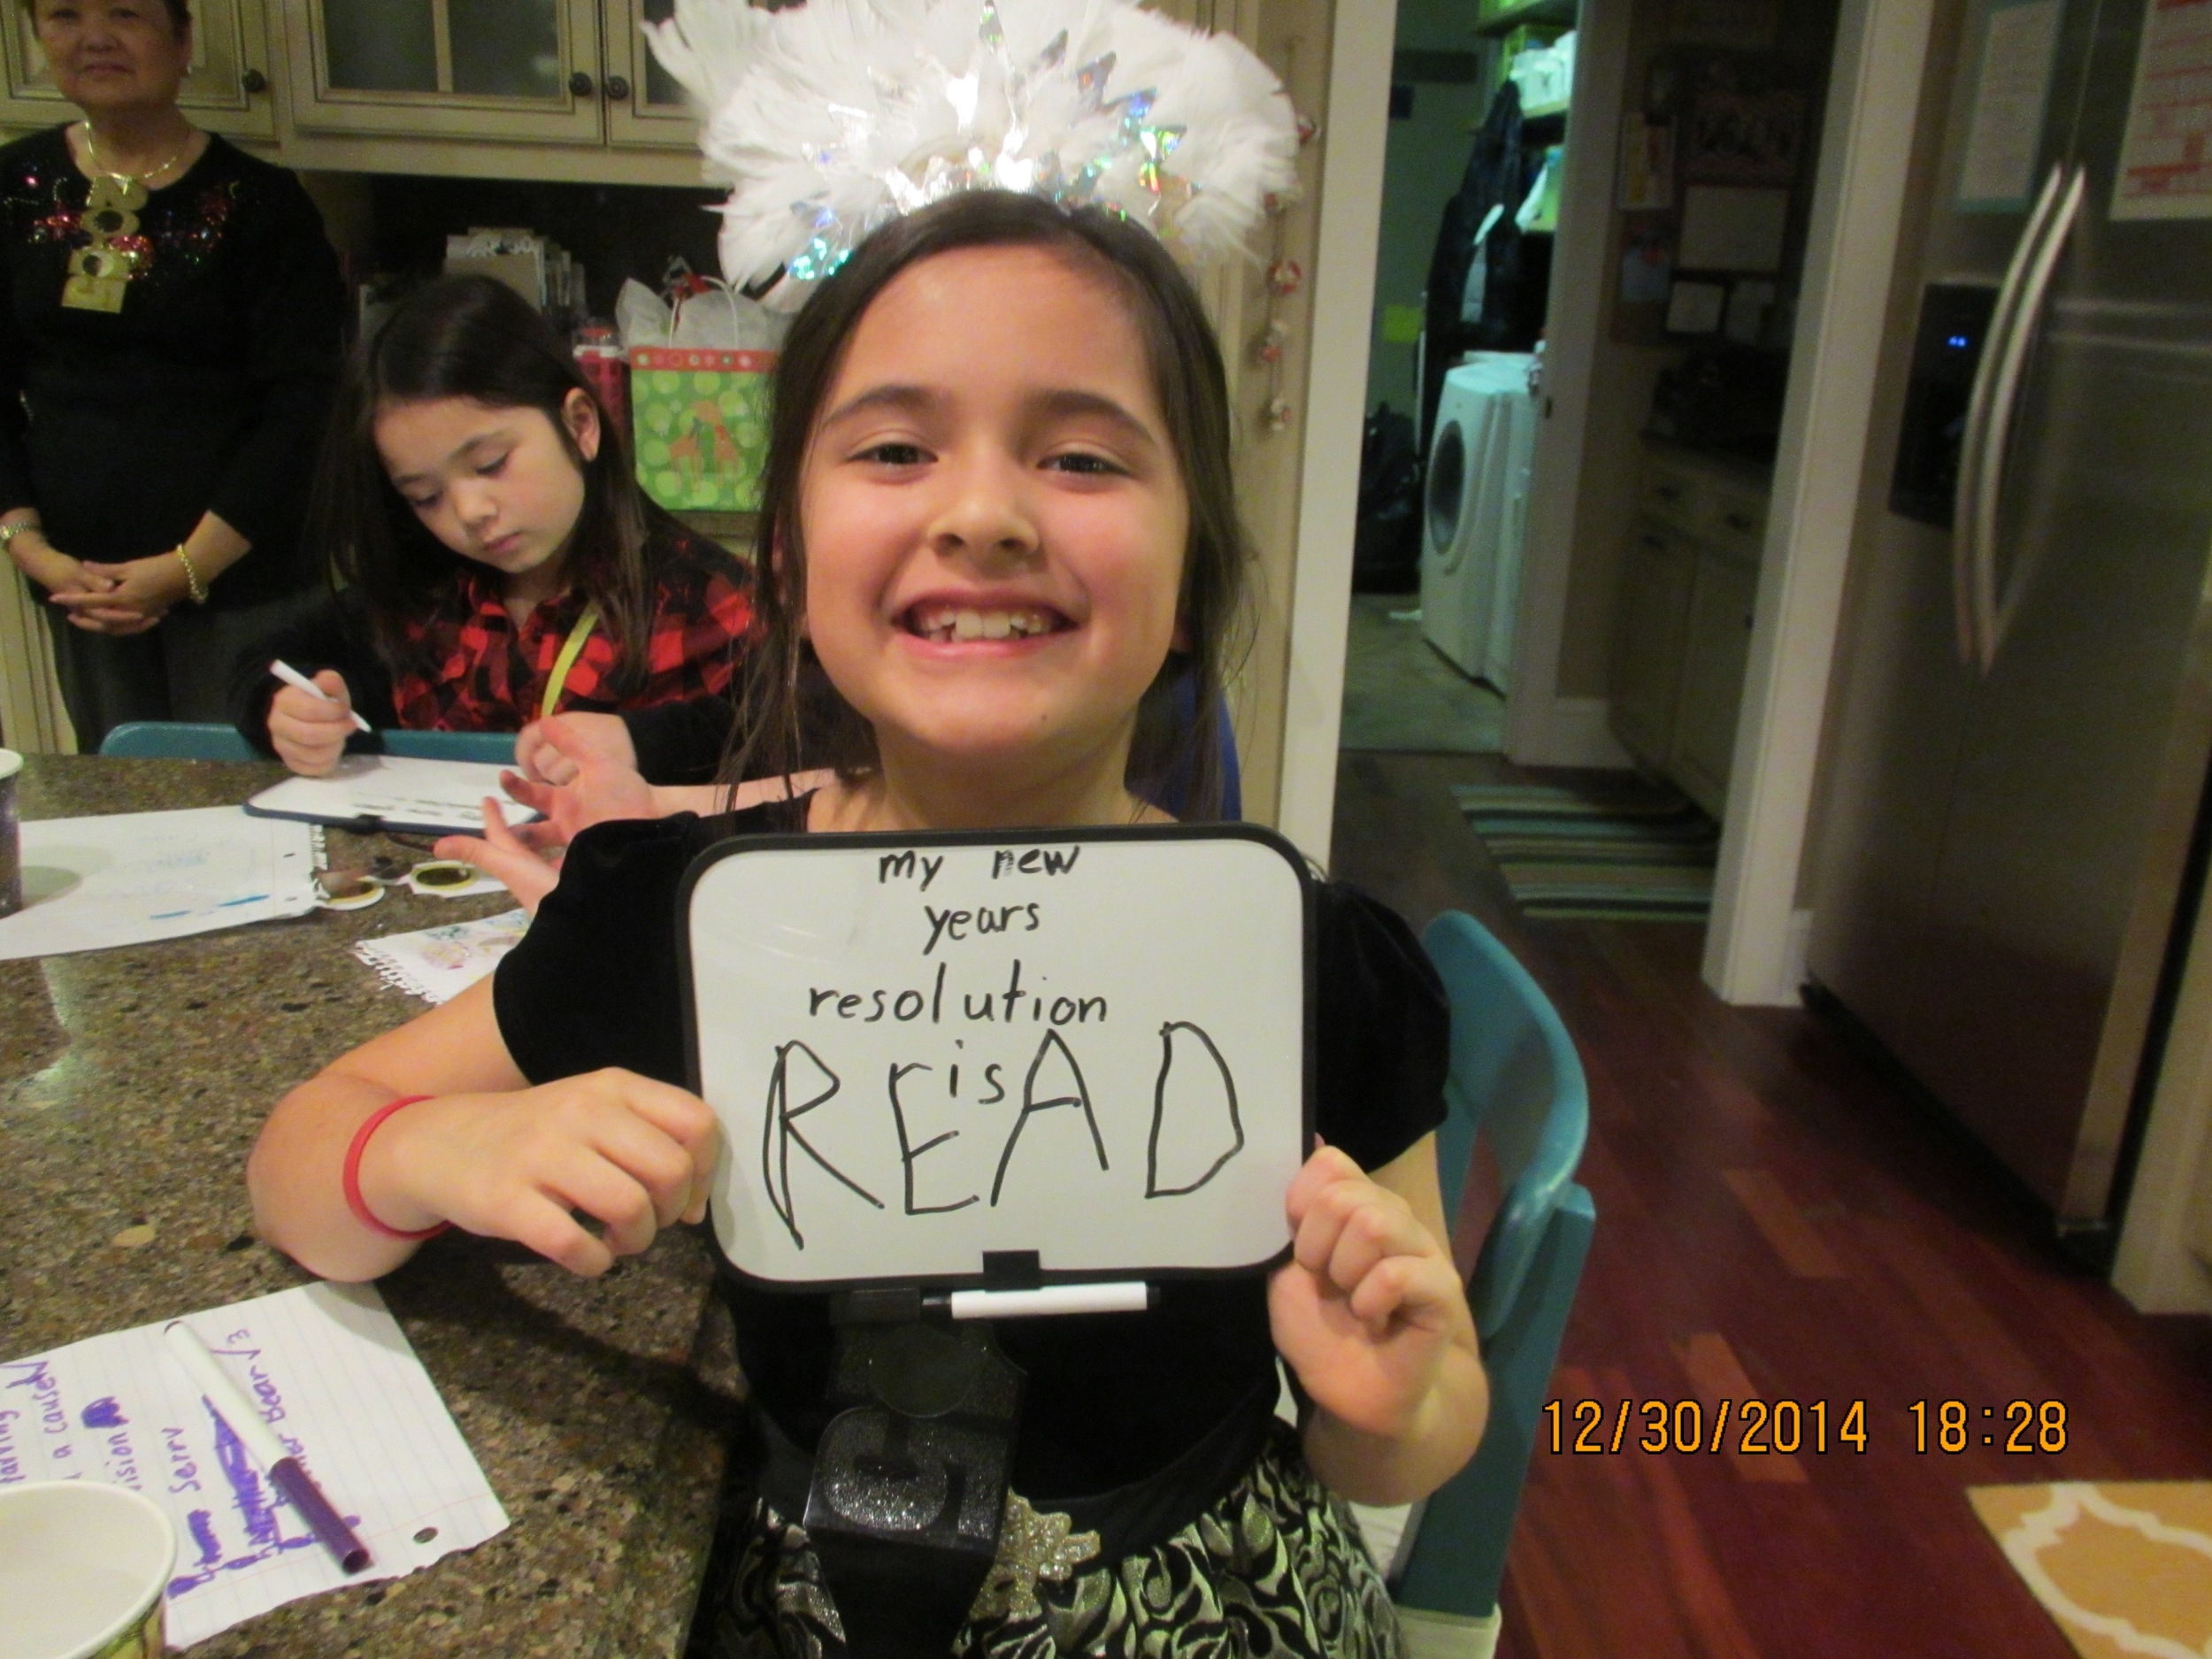 Like mother, like daughter, she can't pick just one resolution so she picks three. But this one is funny because she already reads non-stop!